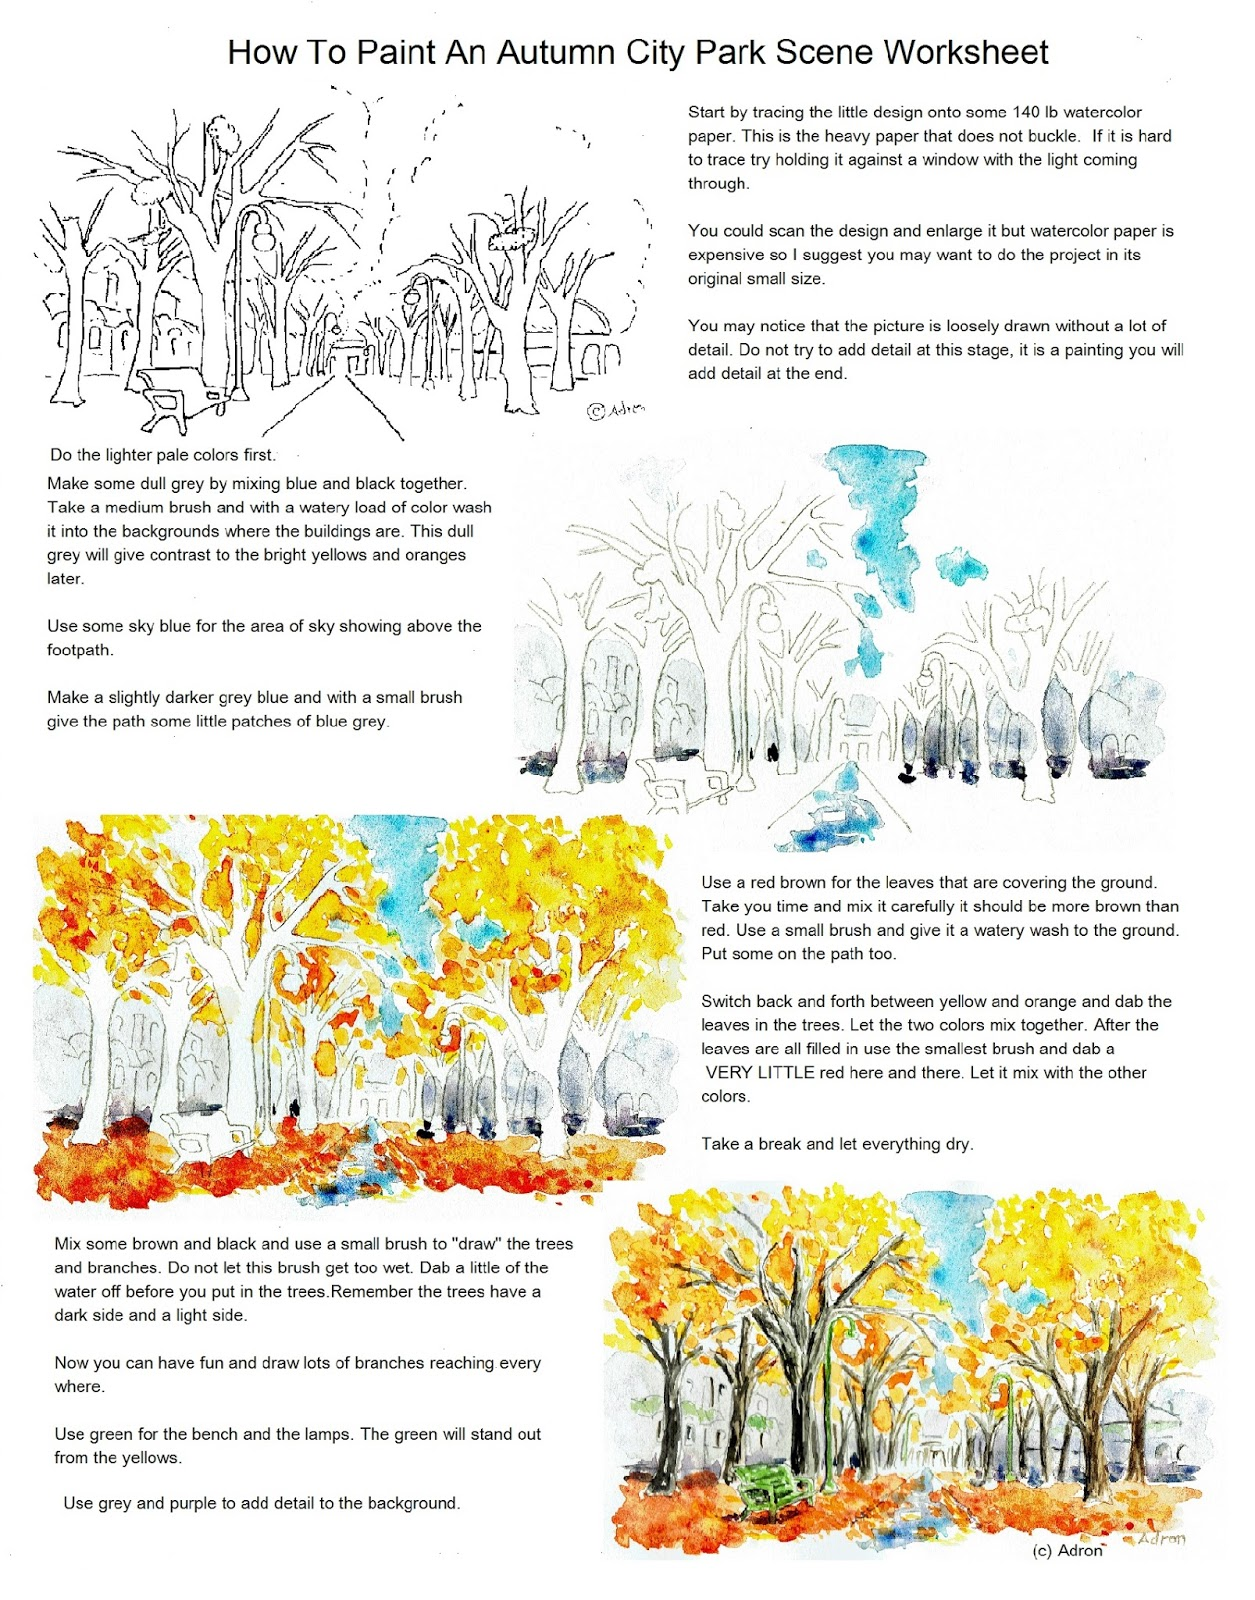 Adron S Art Lesson Plans How To Paint An Autumn City Park